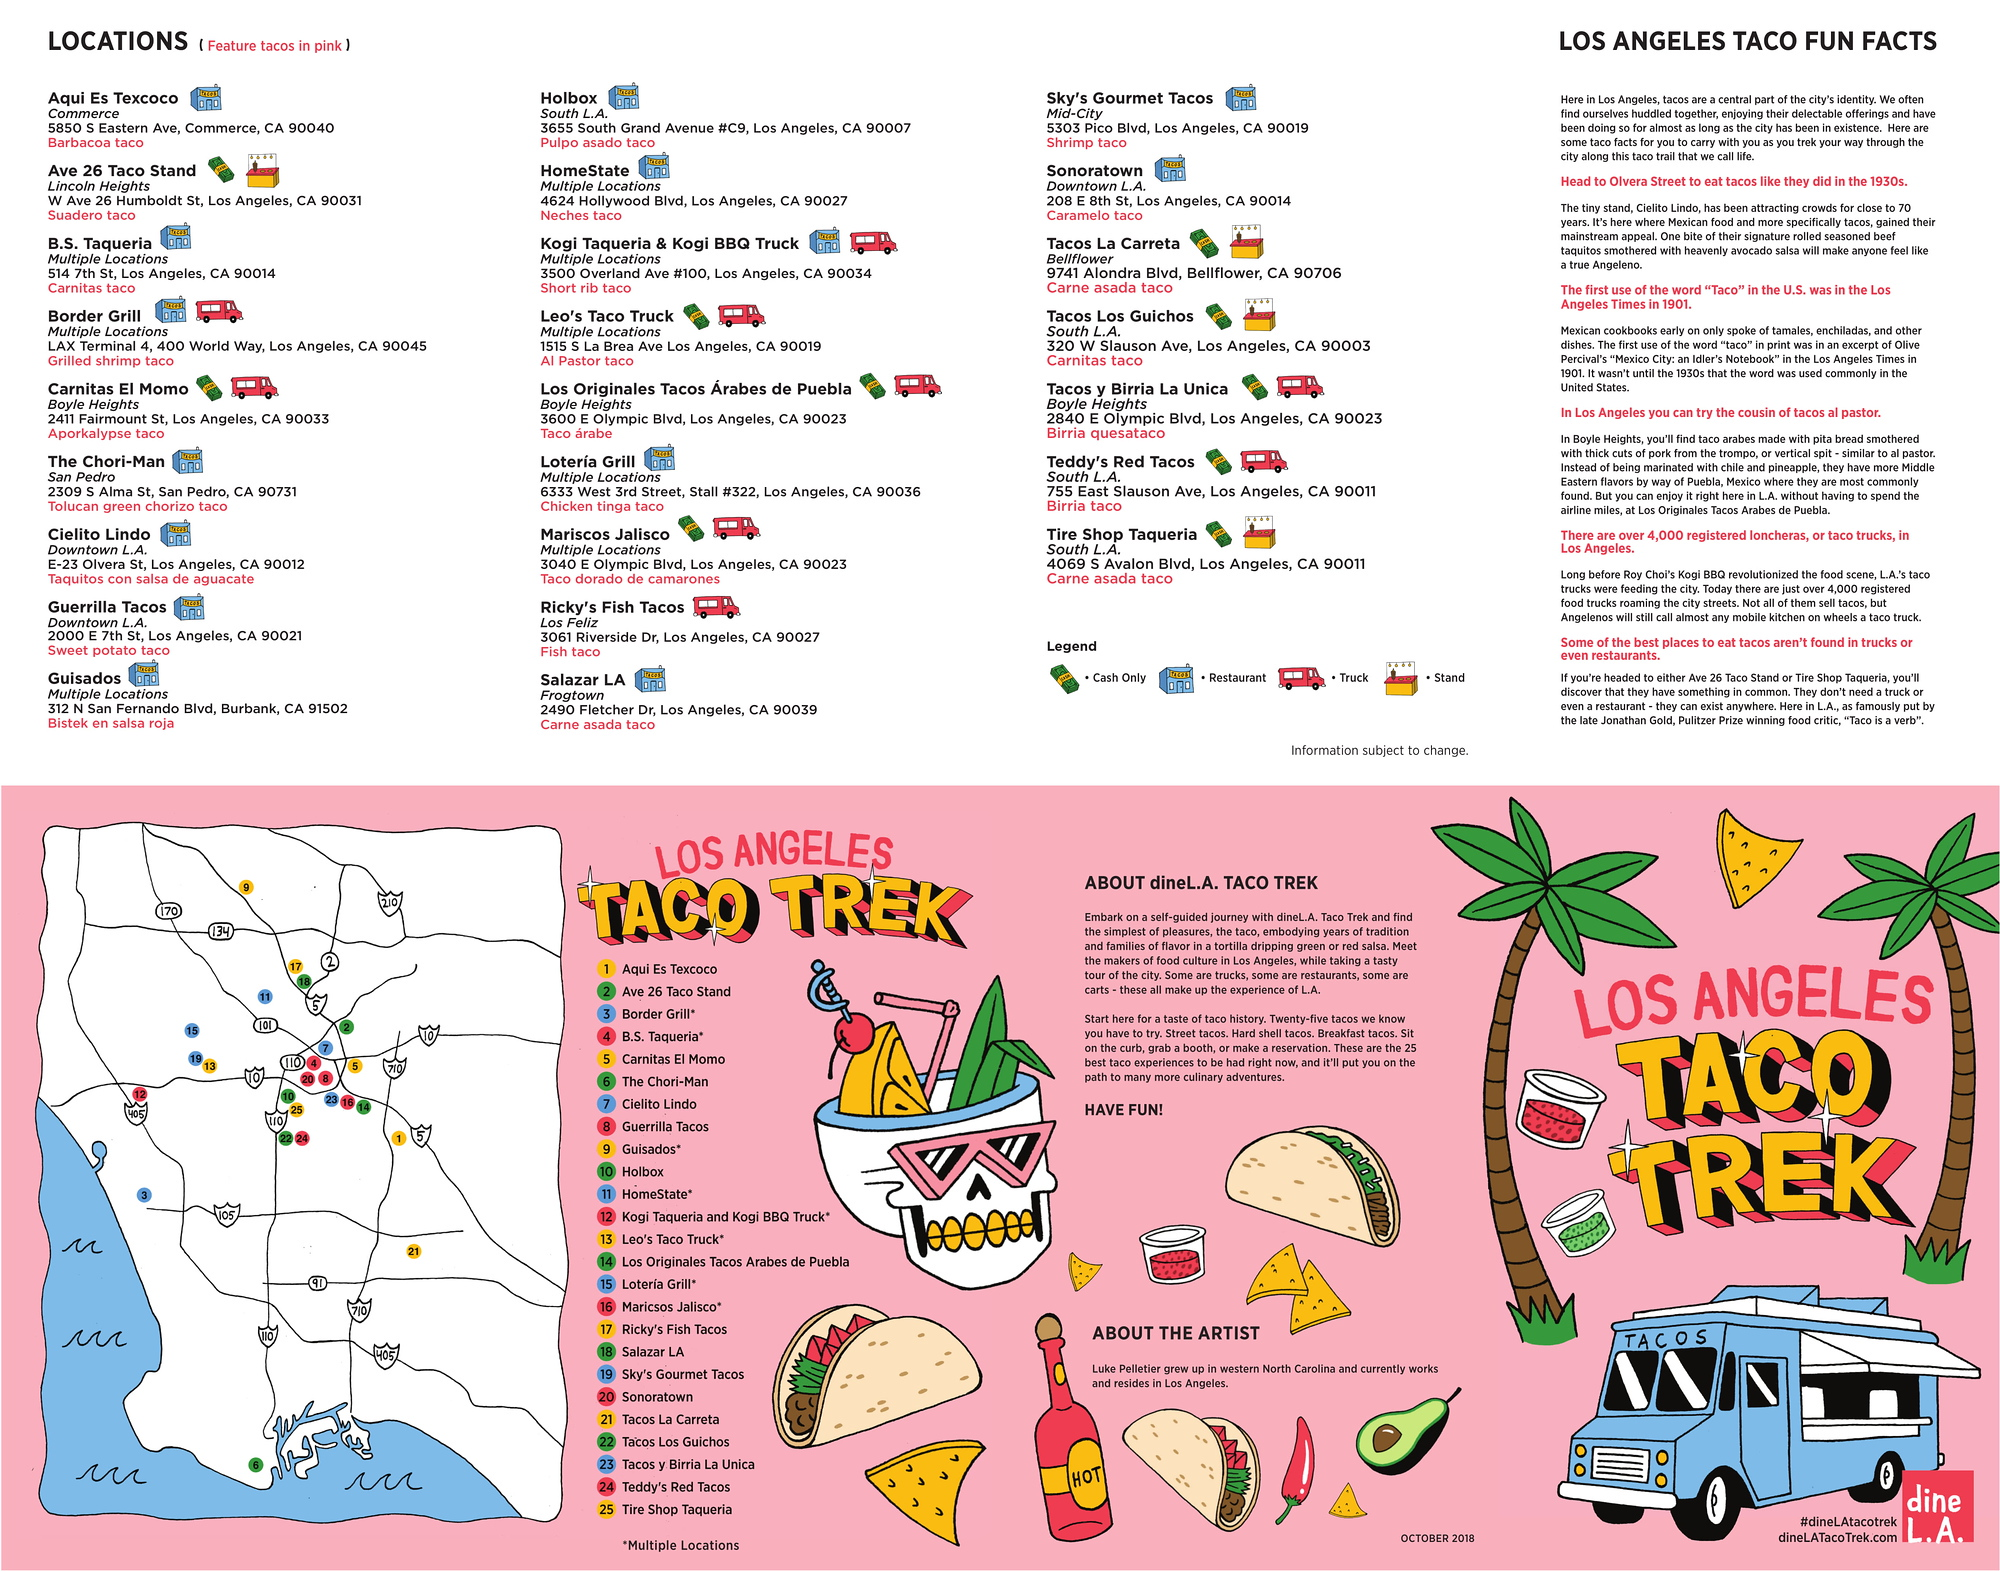 The best tacos in LA according to dineL.A.'s Taco Trek map.